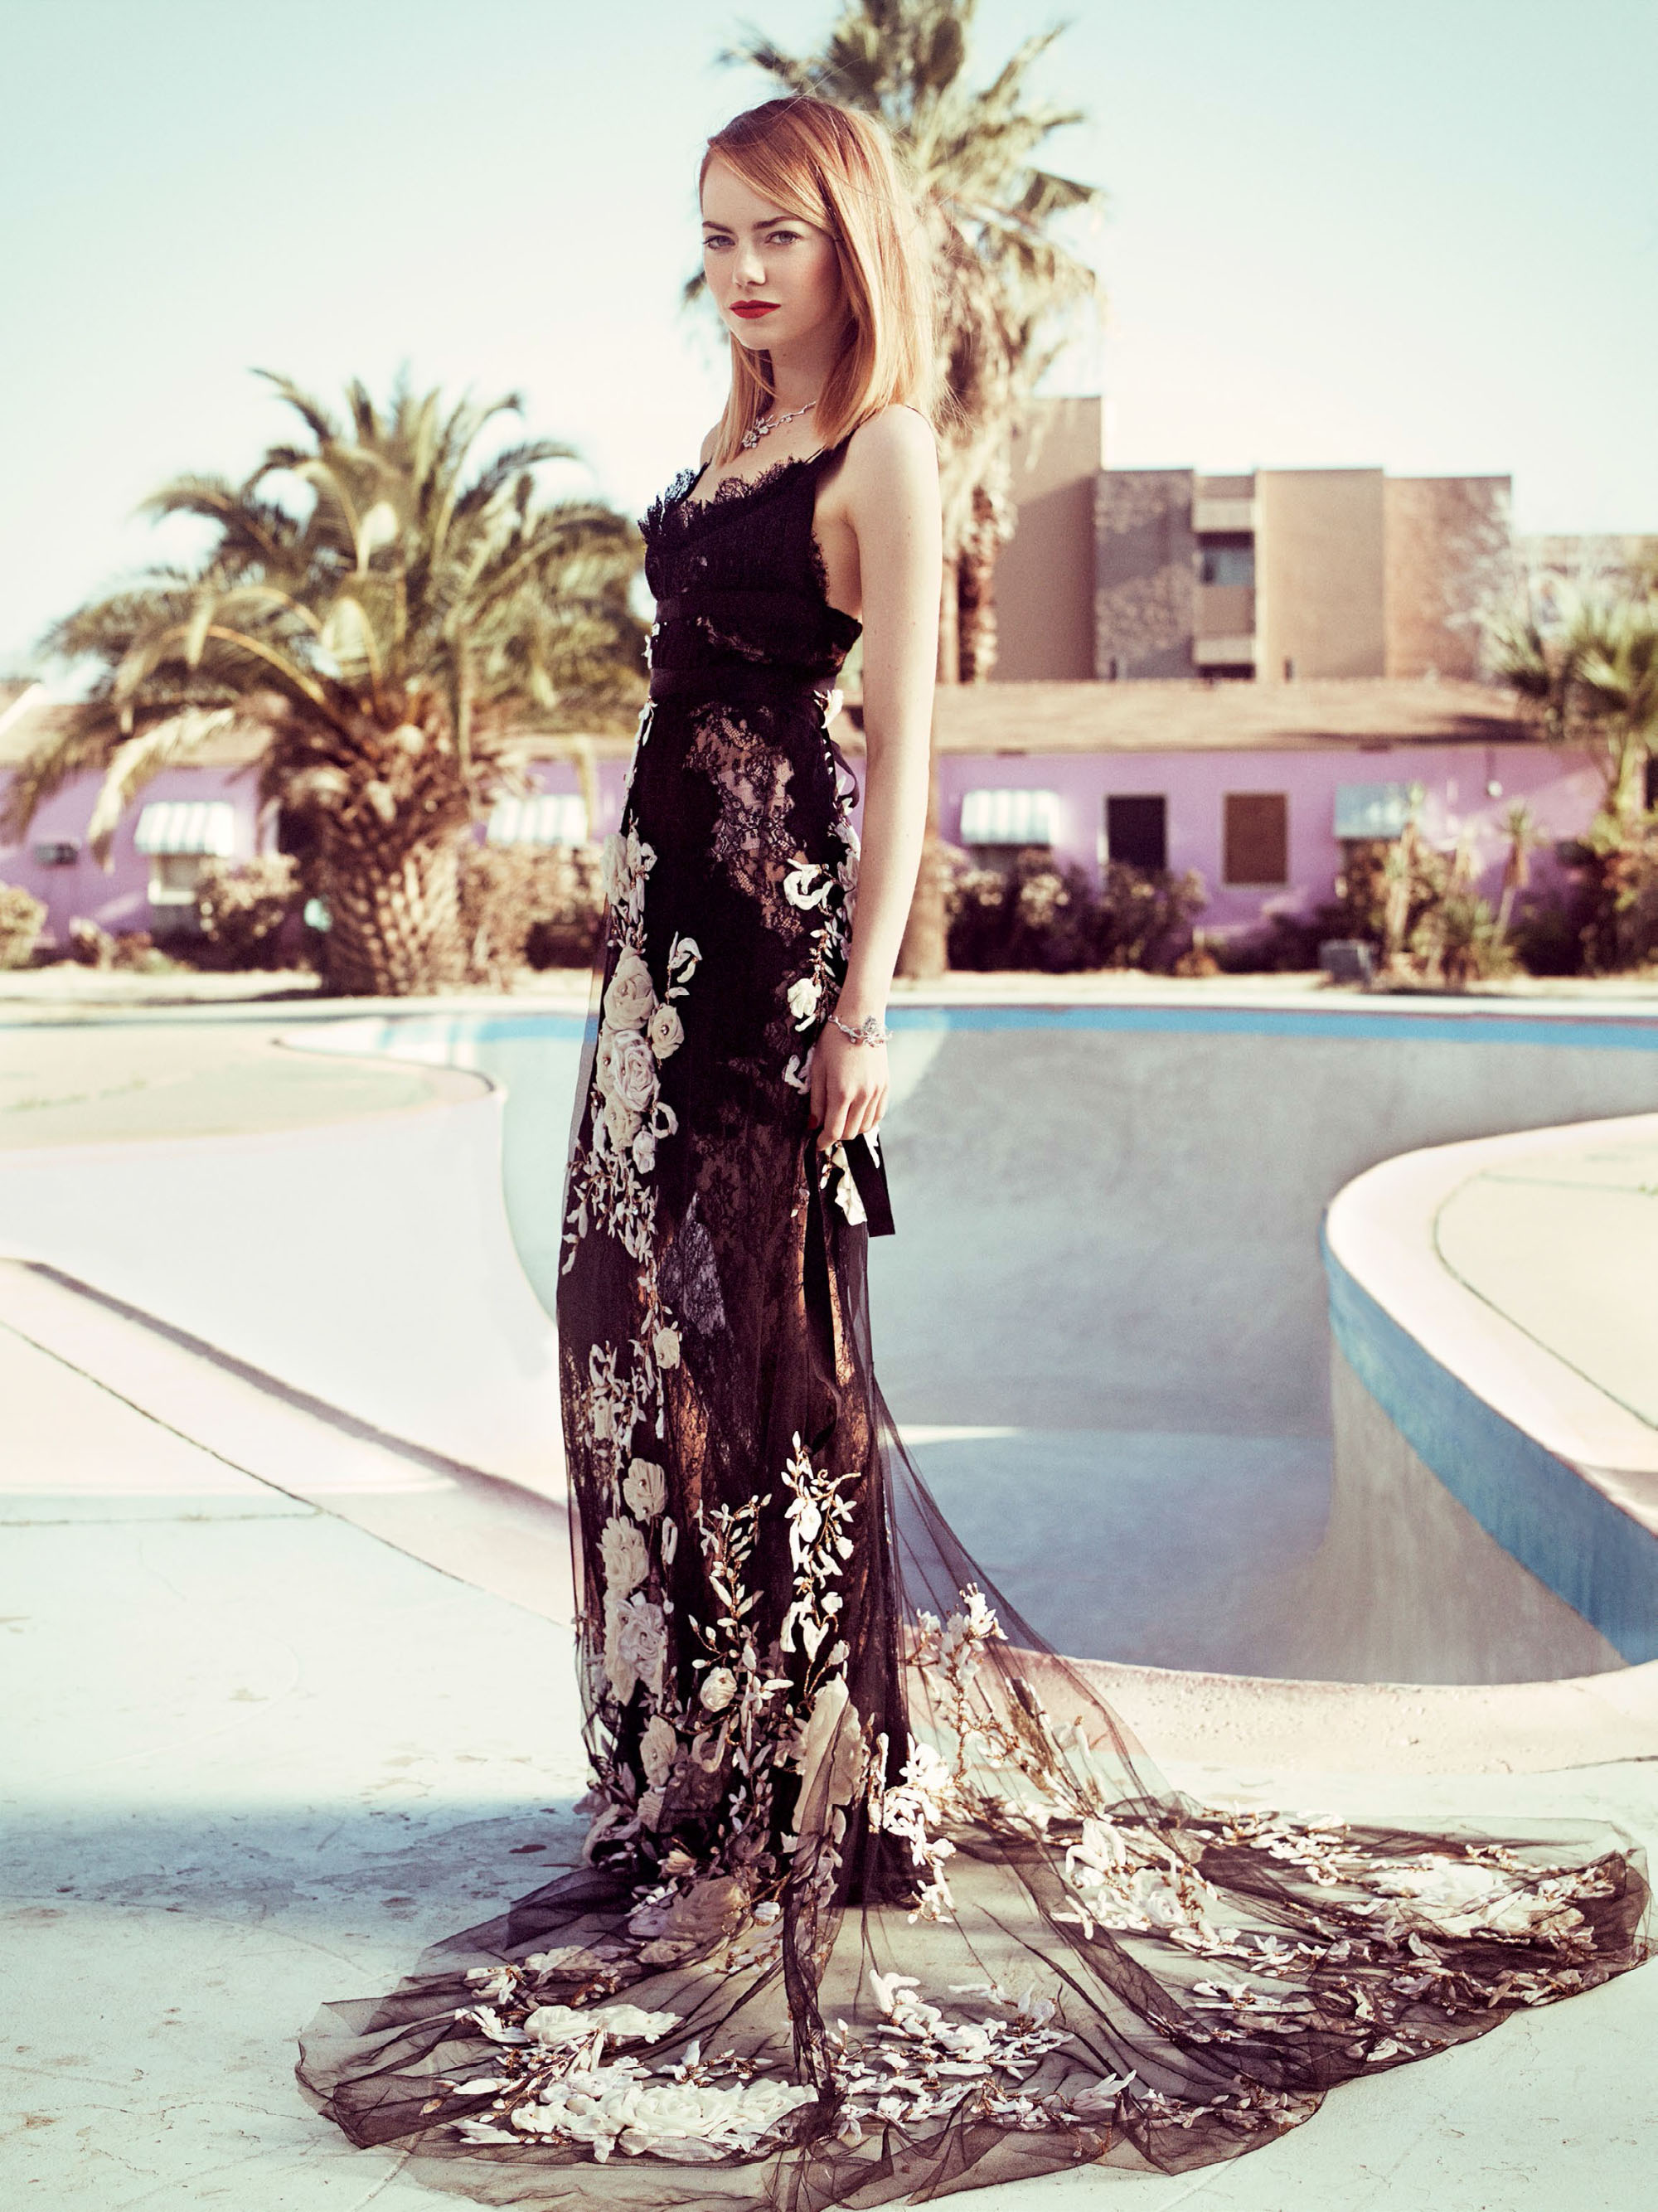 emma-stone-by-craig-mcdean-for-vogue-us-may-2014-6